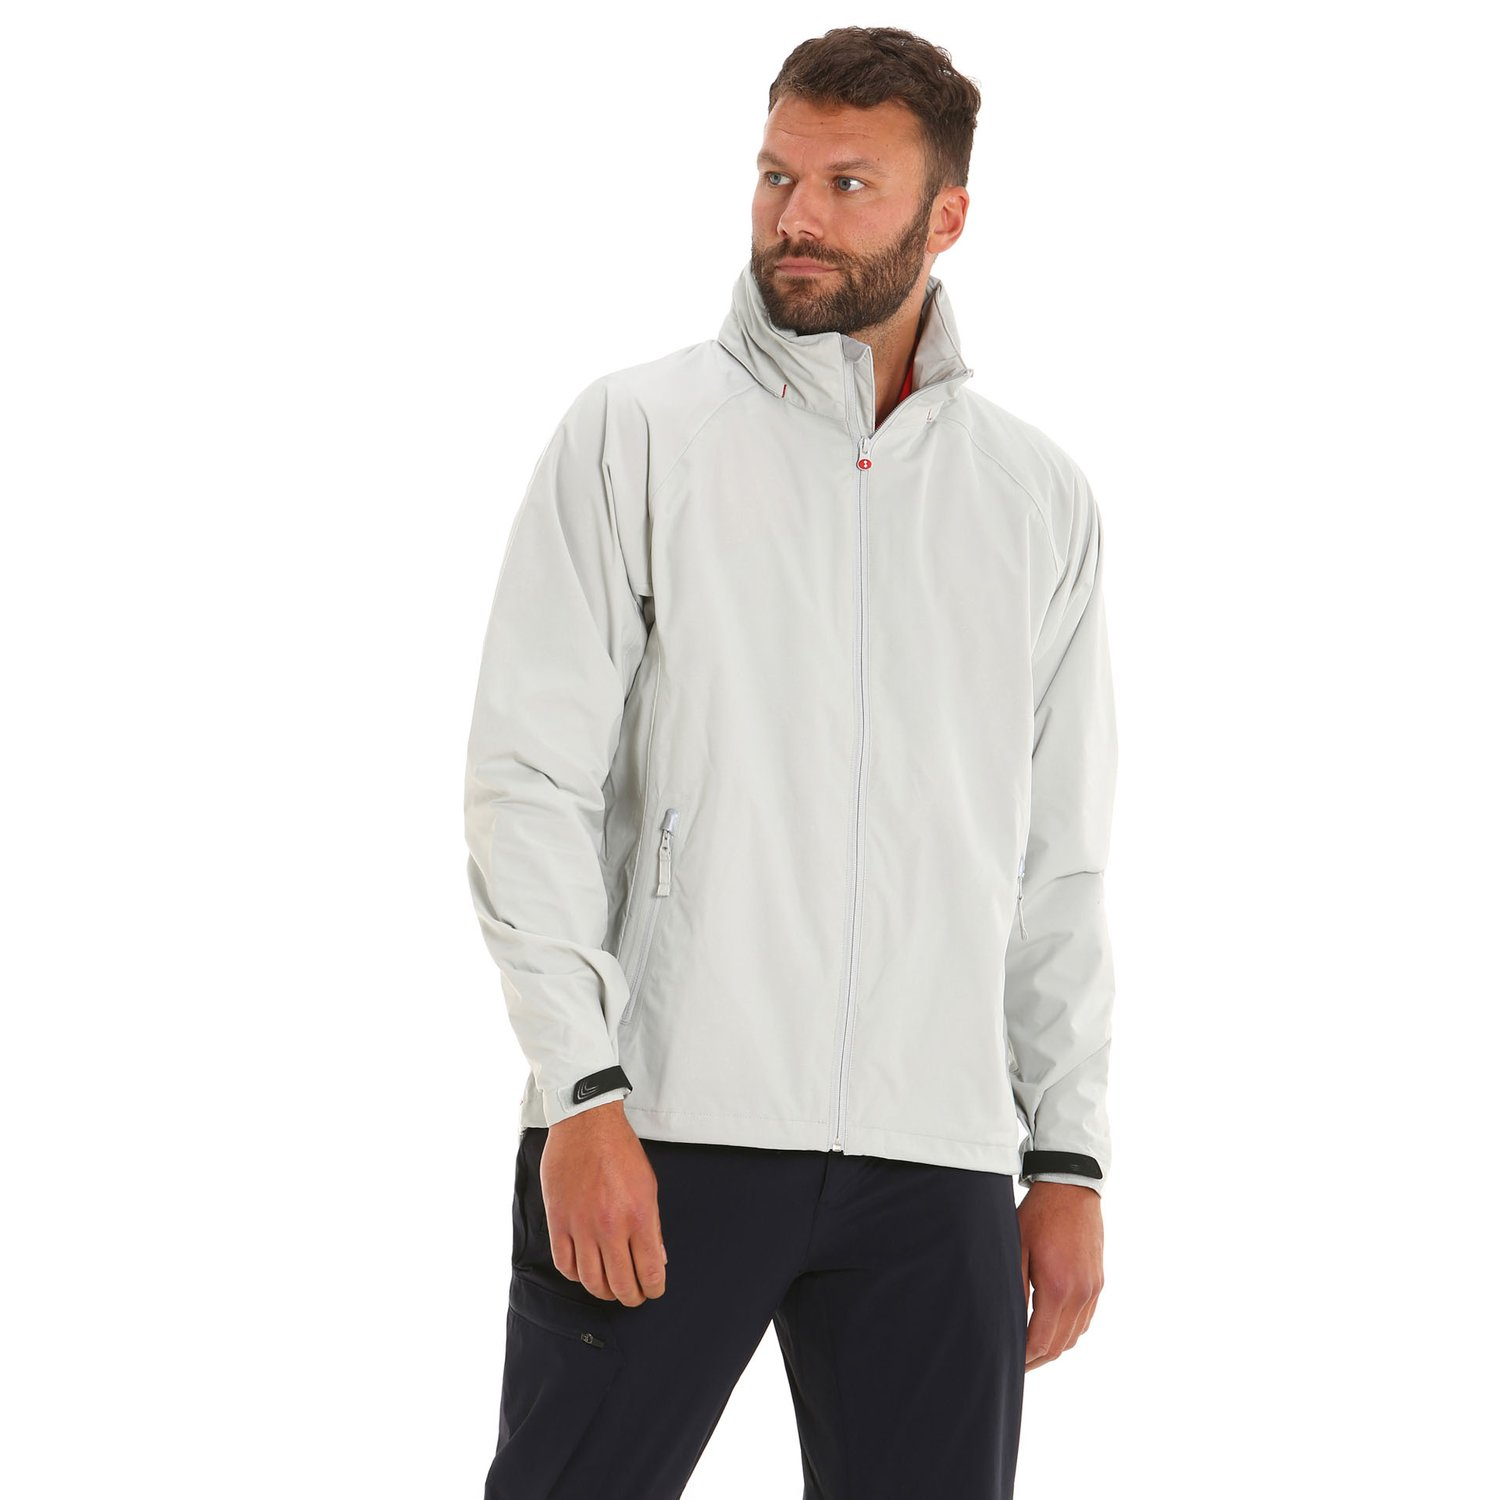 Men's portofino jacket - Light Grey